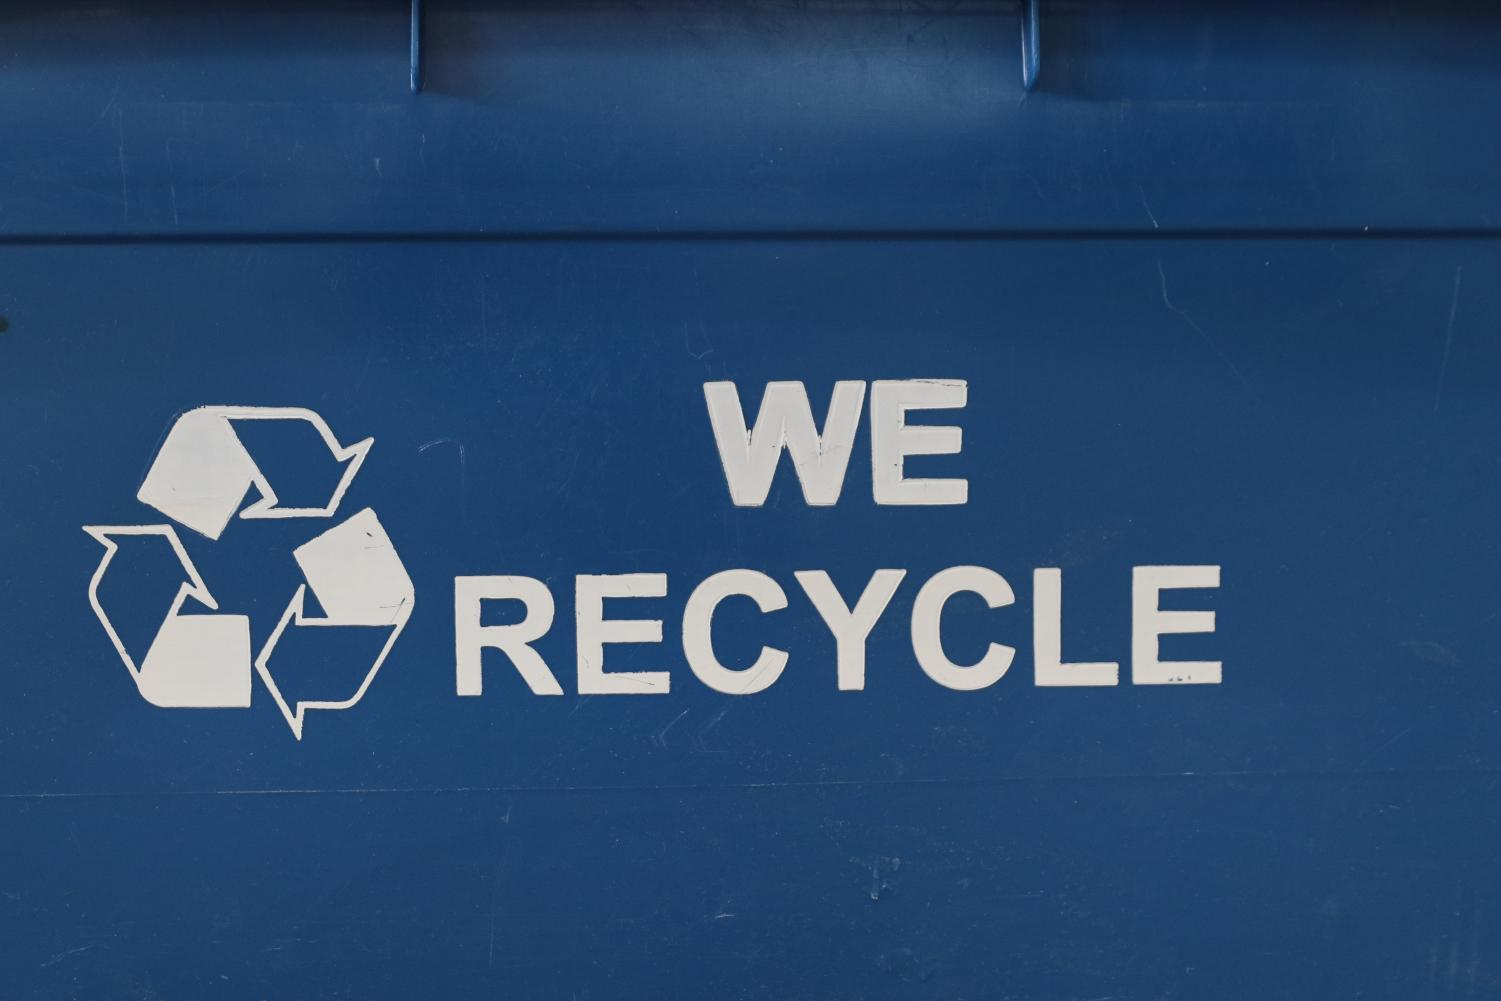 Do We Recycle? Recent rumors suggest the City Of Arlington does not actually recycle waste products.